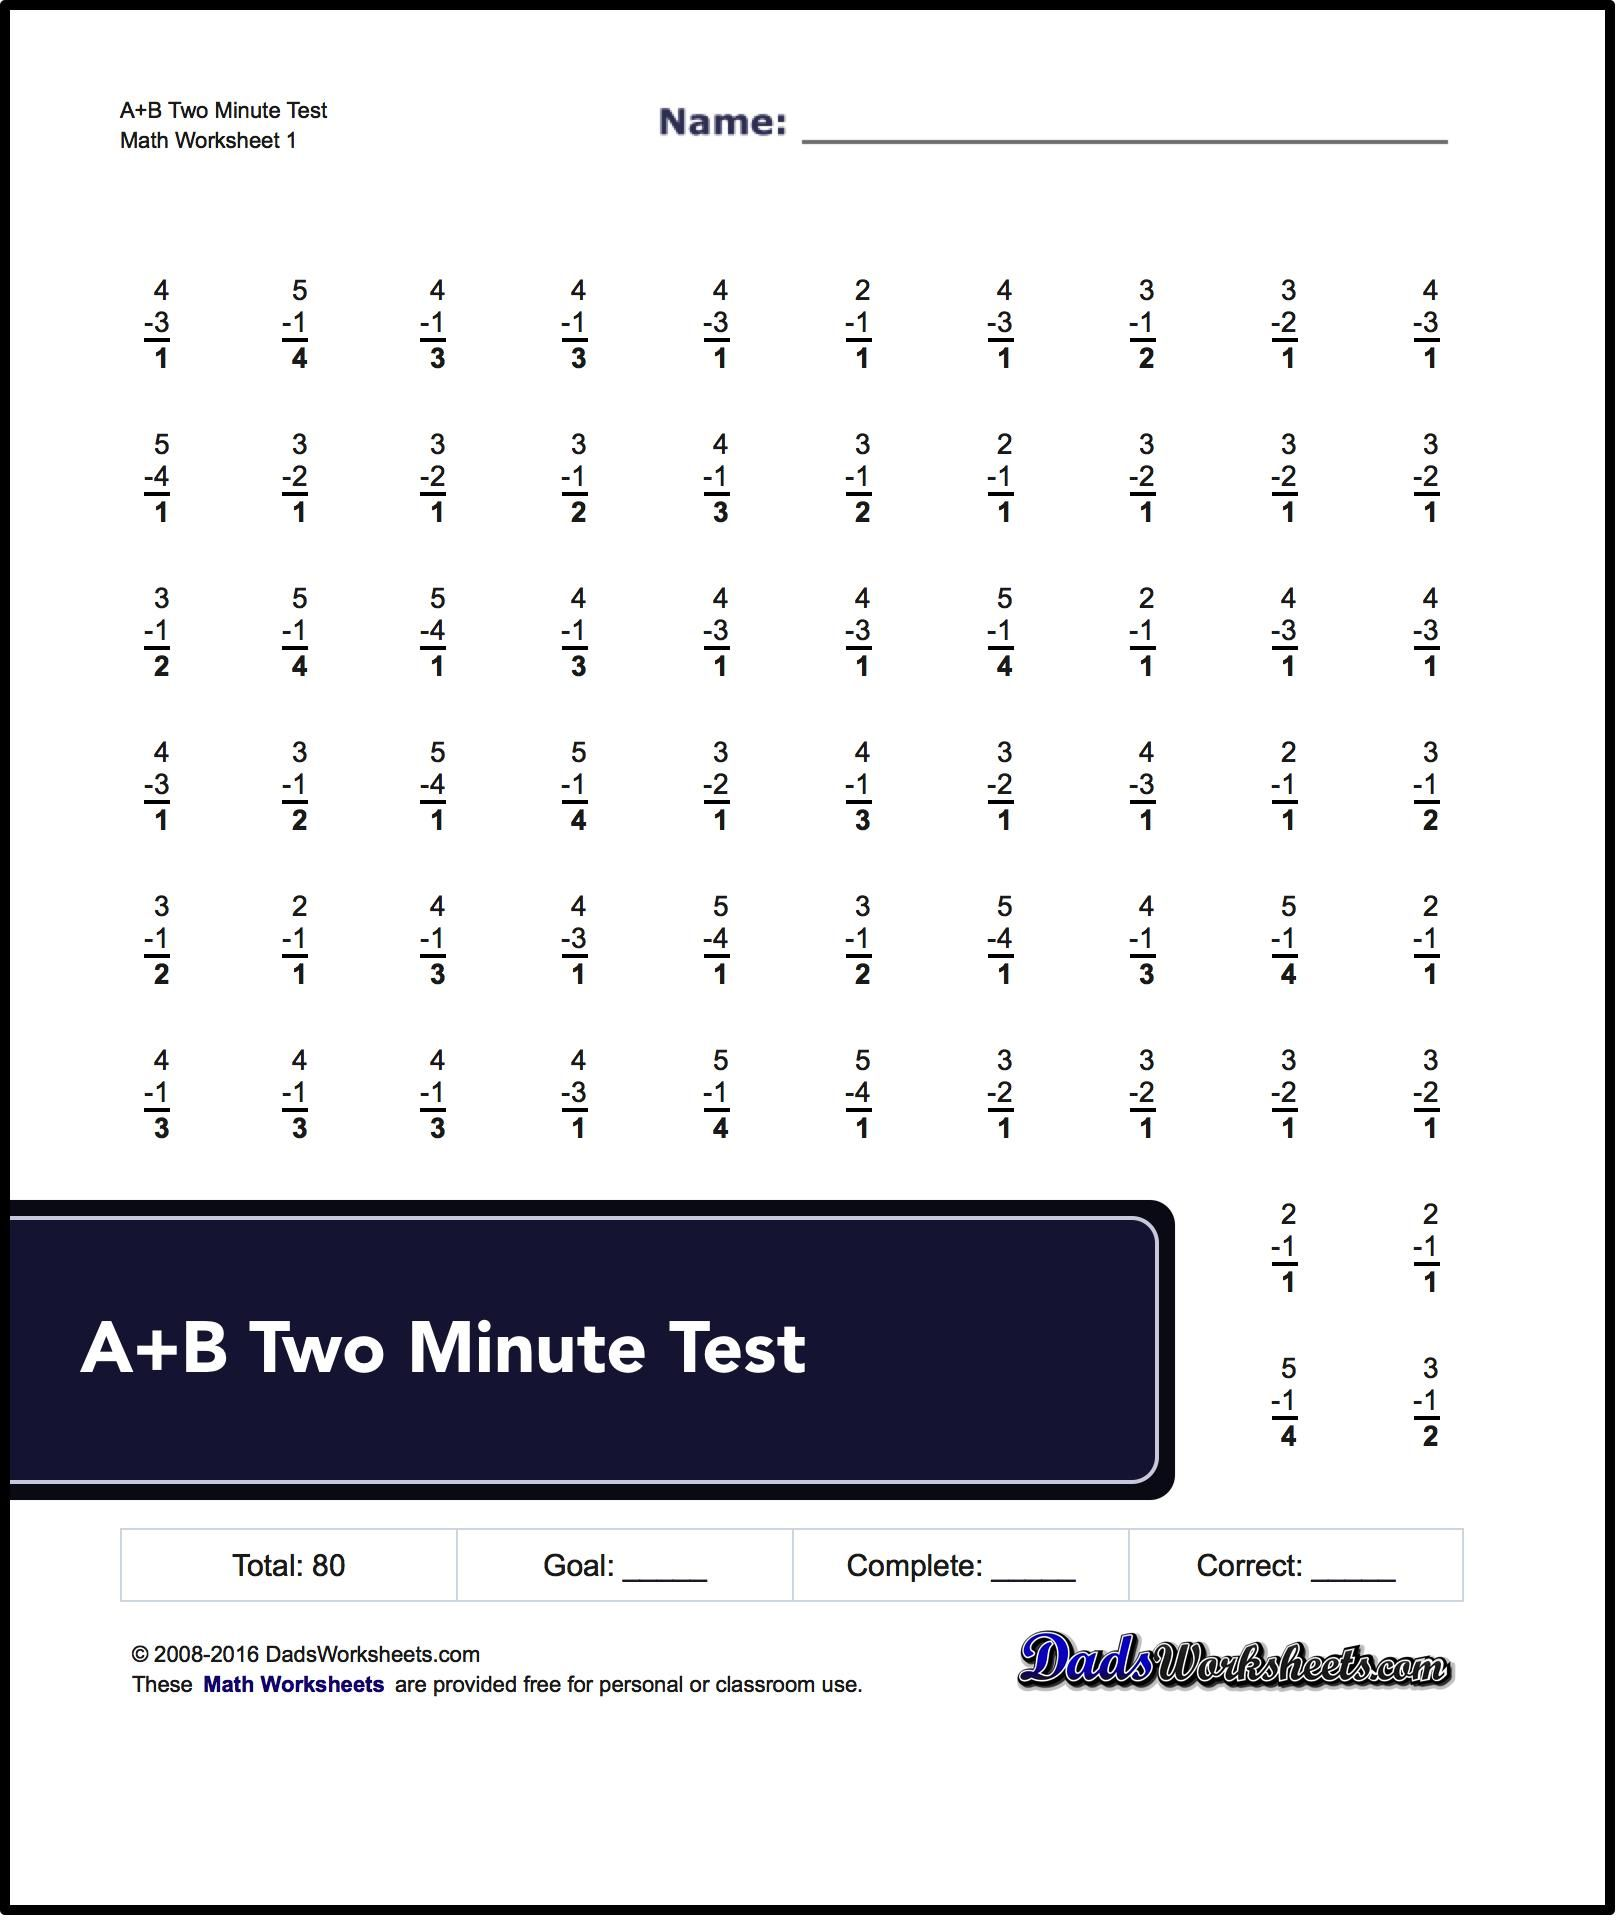 Two Minute Versions Of The Spaceship Math Subtraction Worksheets With 80 And 100 Problems Per